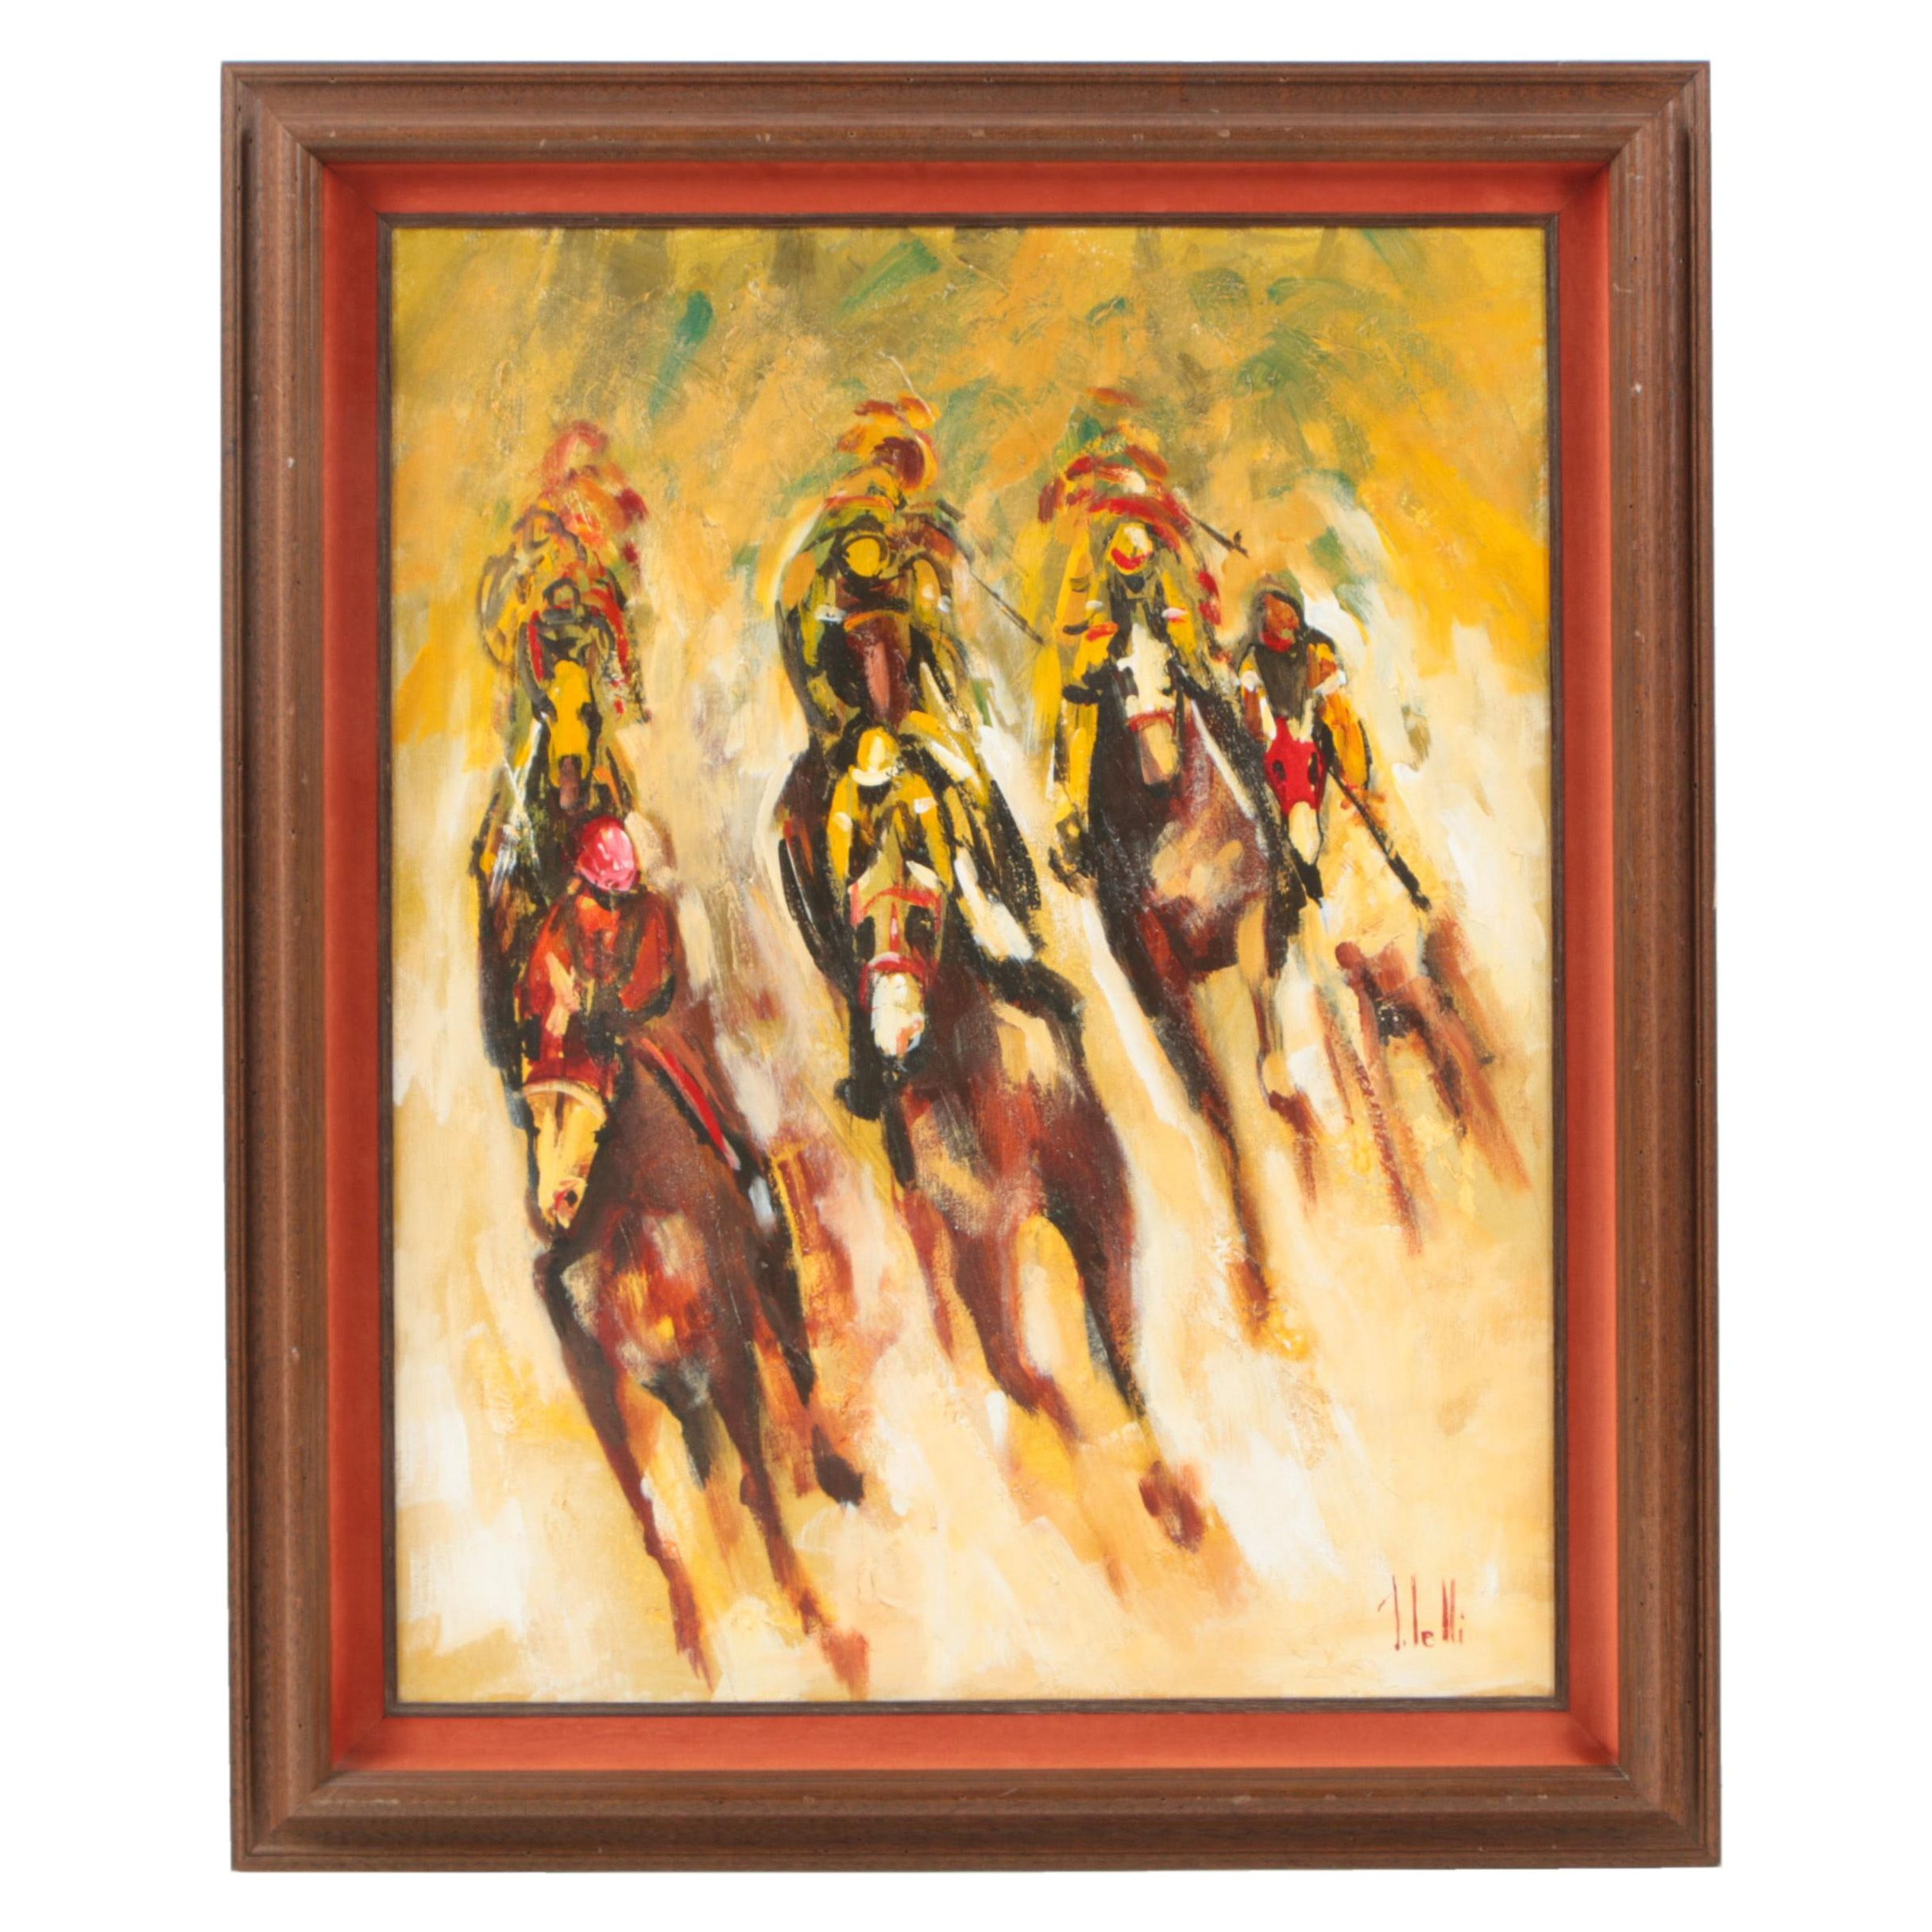 Lelli Oil Painting on Canvas of Horse Racing Scene